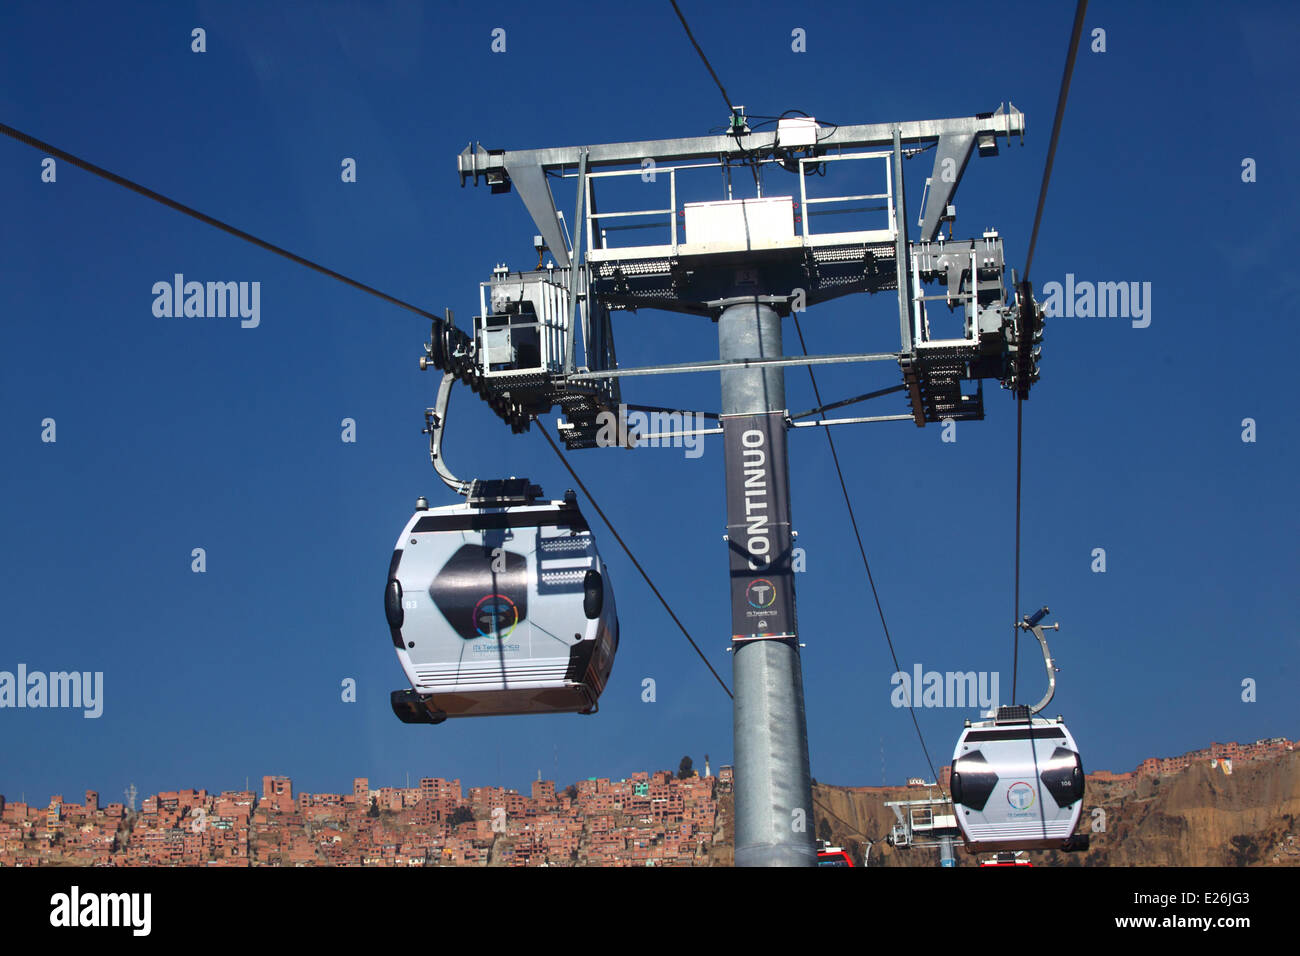 2014 World Cup Stock Photos & 2014 World Cup Stock Images - Alamy